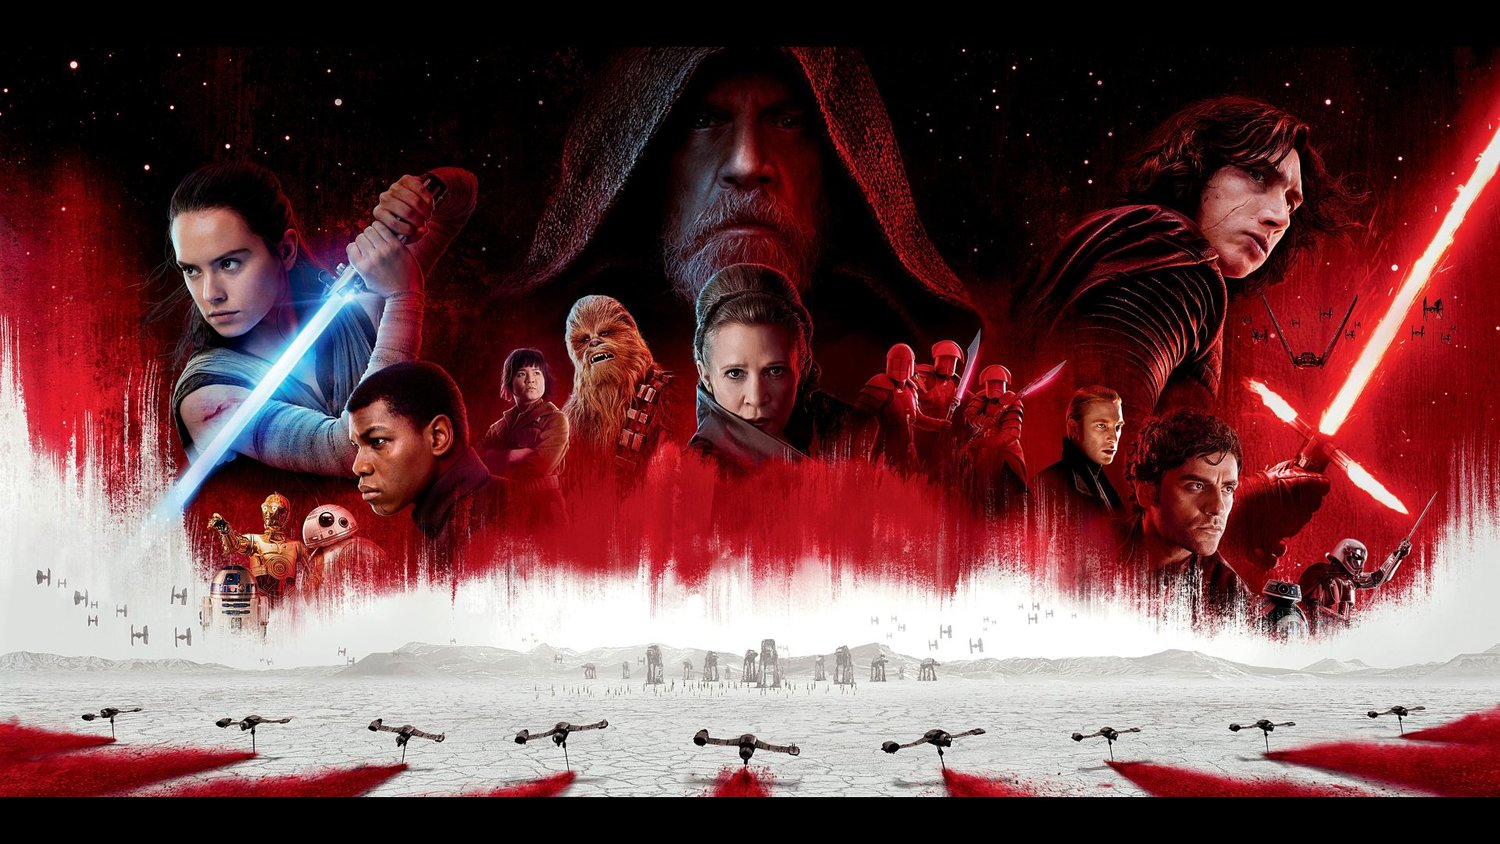 STAR WARS: THE LAST JEDI Has Sold the Most Blu-Rays in 2018